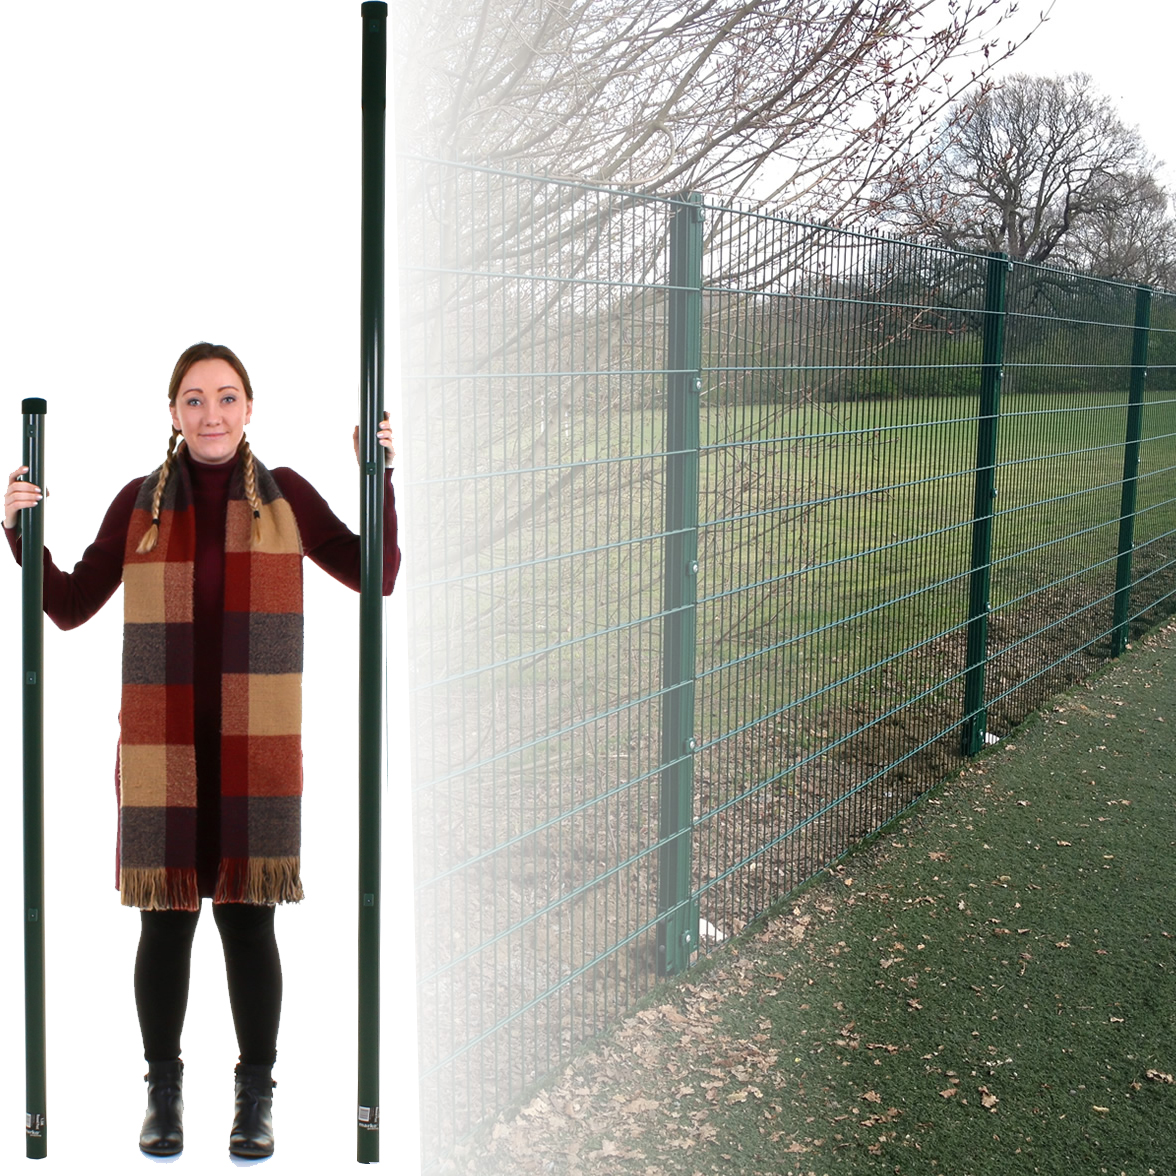 40 x Fencing Rattling Fence Panel Wind Gale To Fit All Sizes Of Concrete Posts